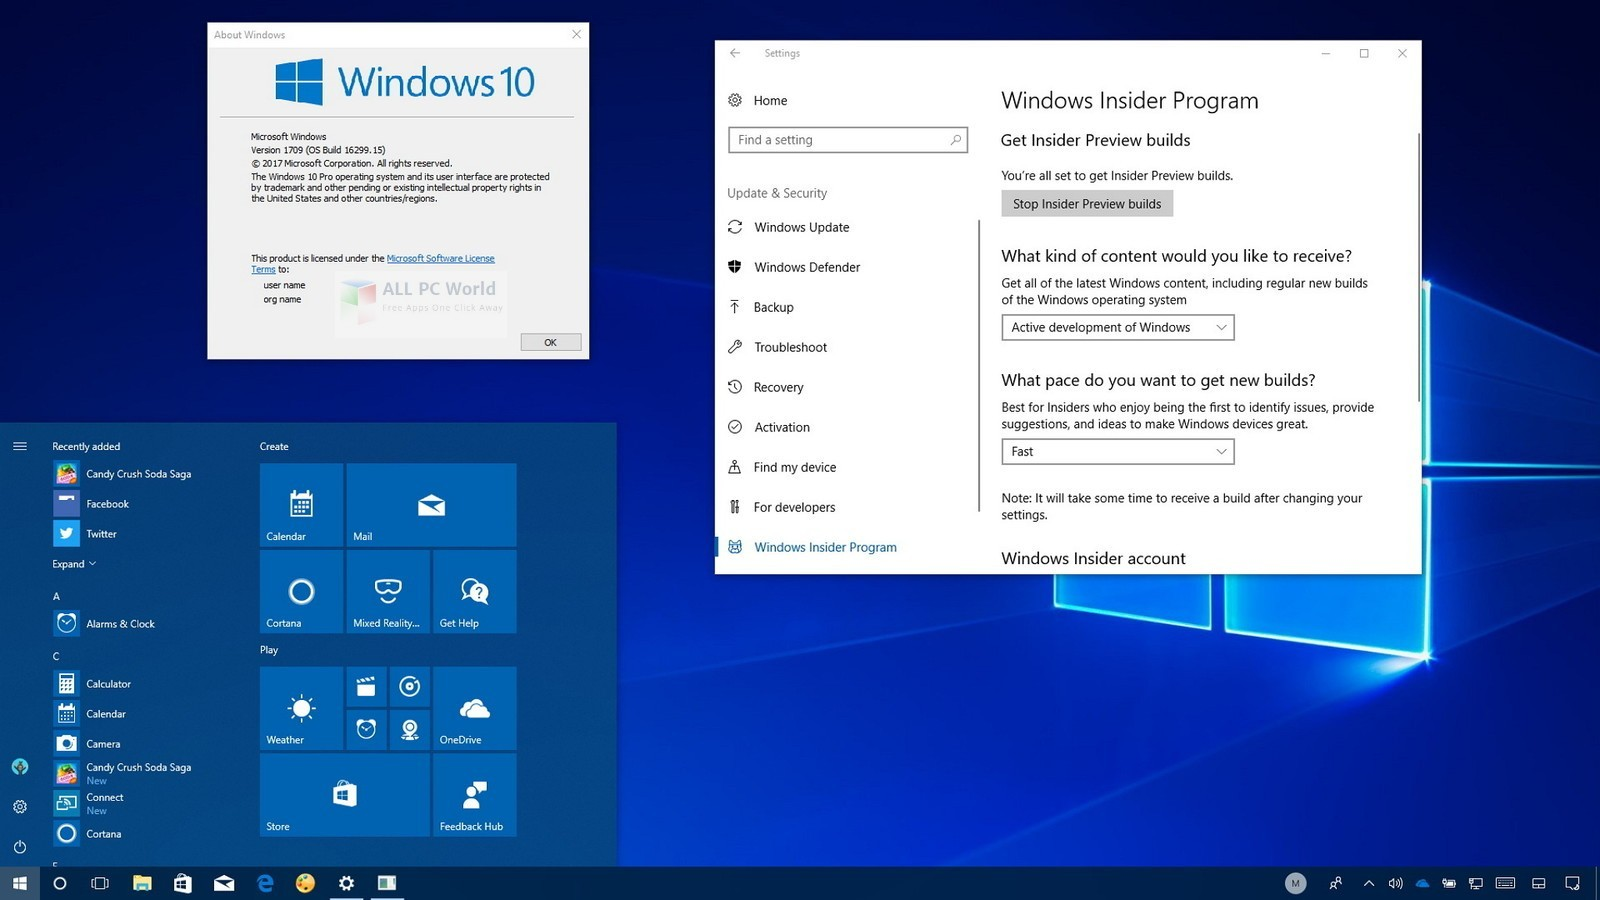 Windows 10 Pro X64 RS4 JUNE 2018 Free Download